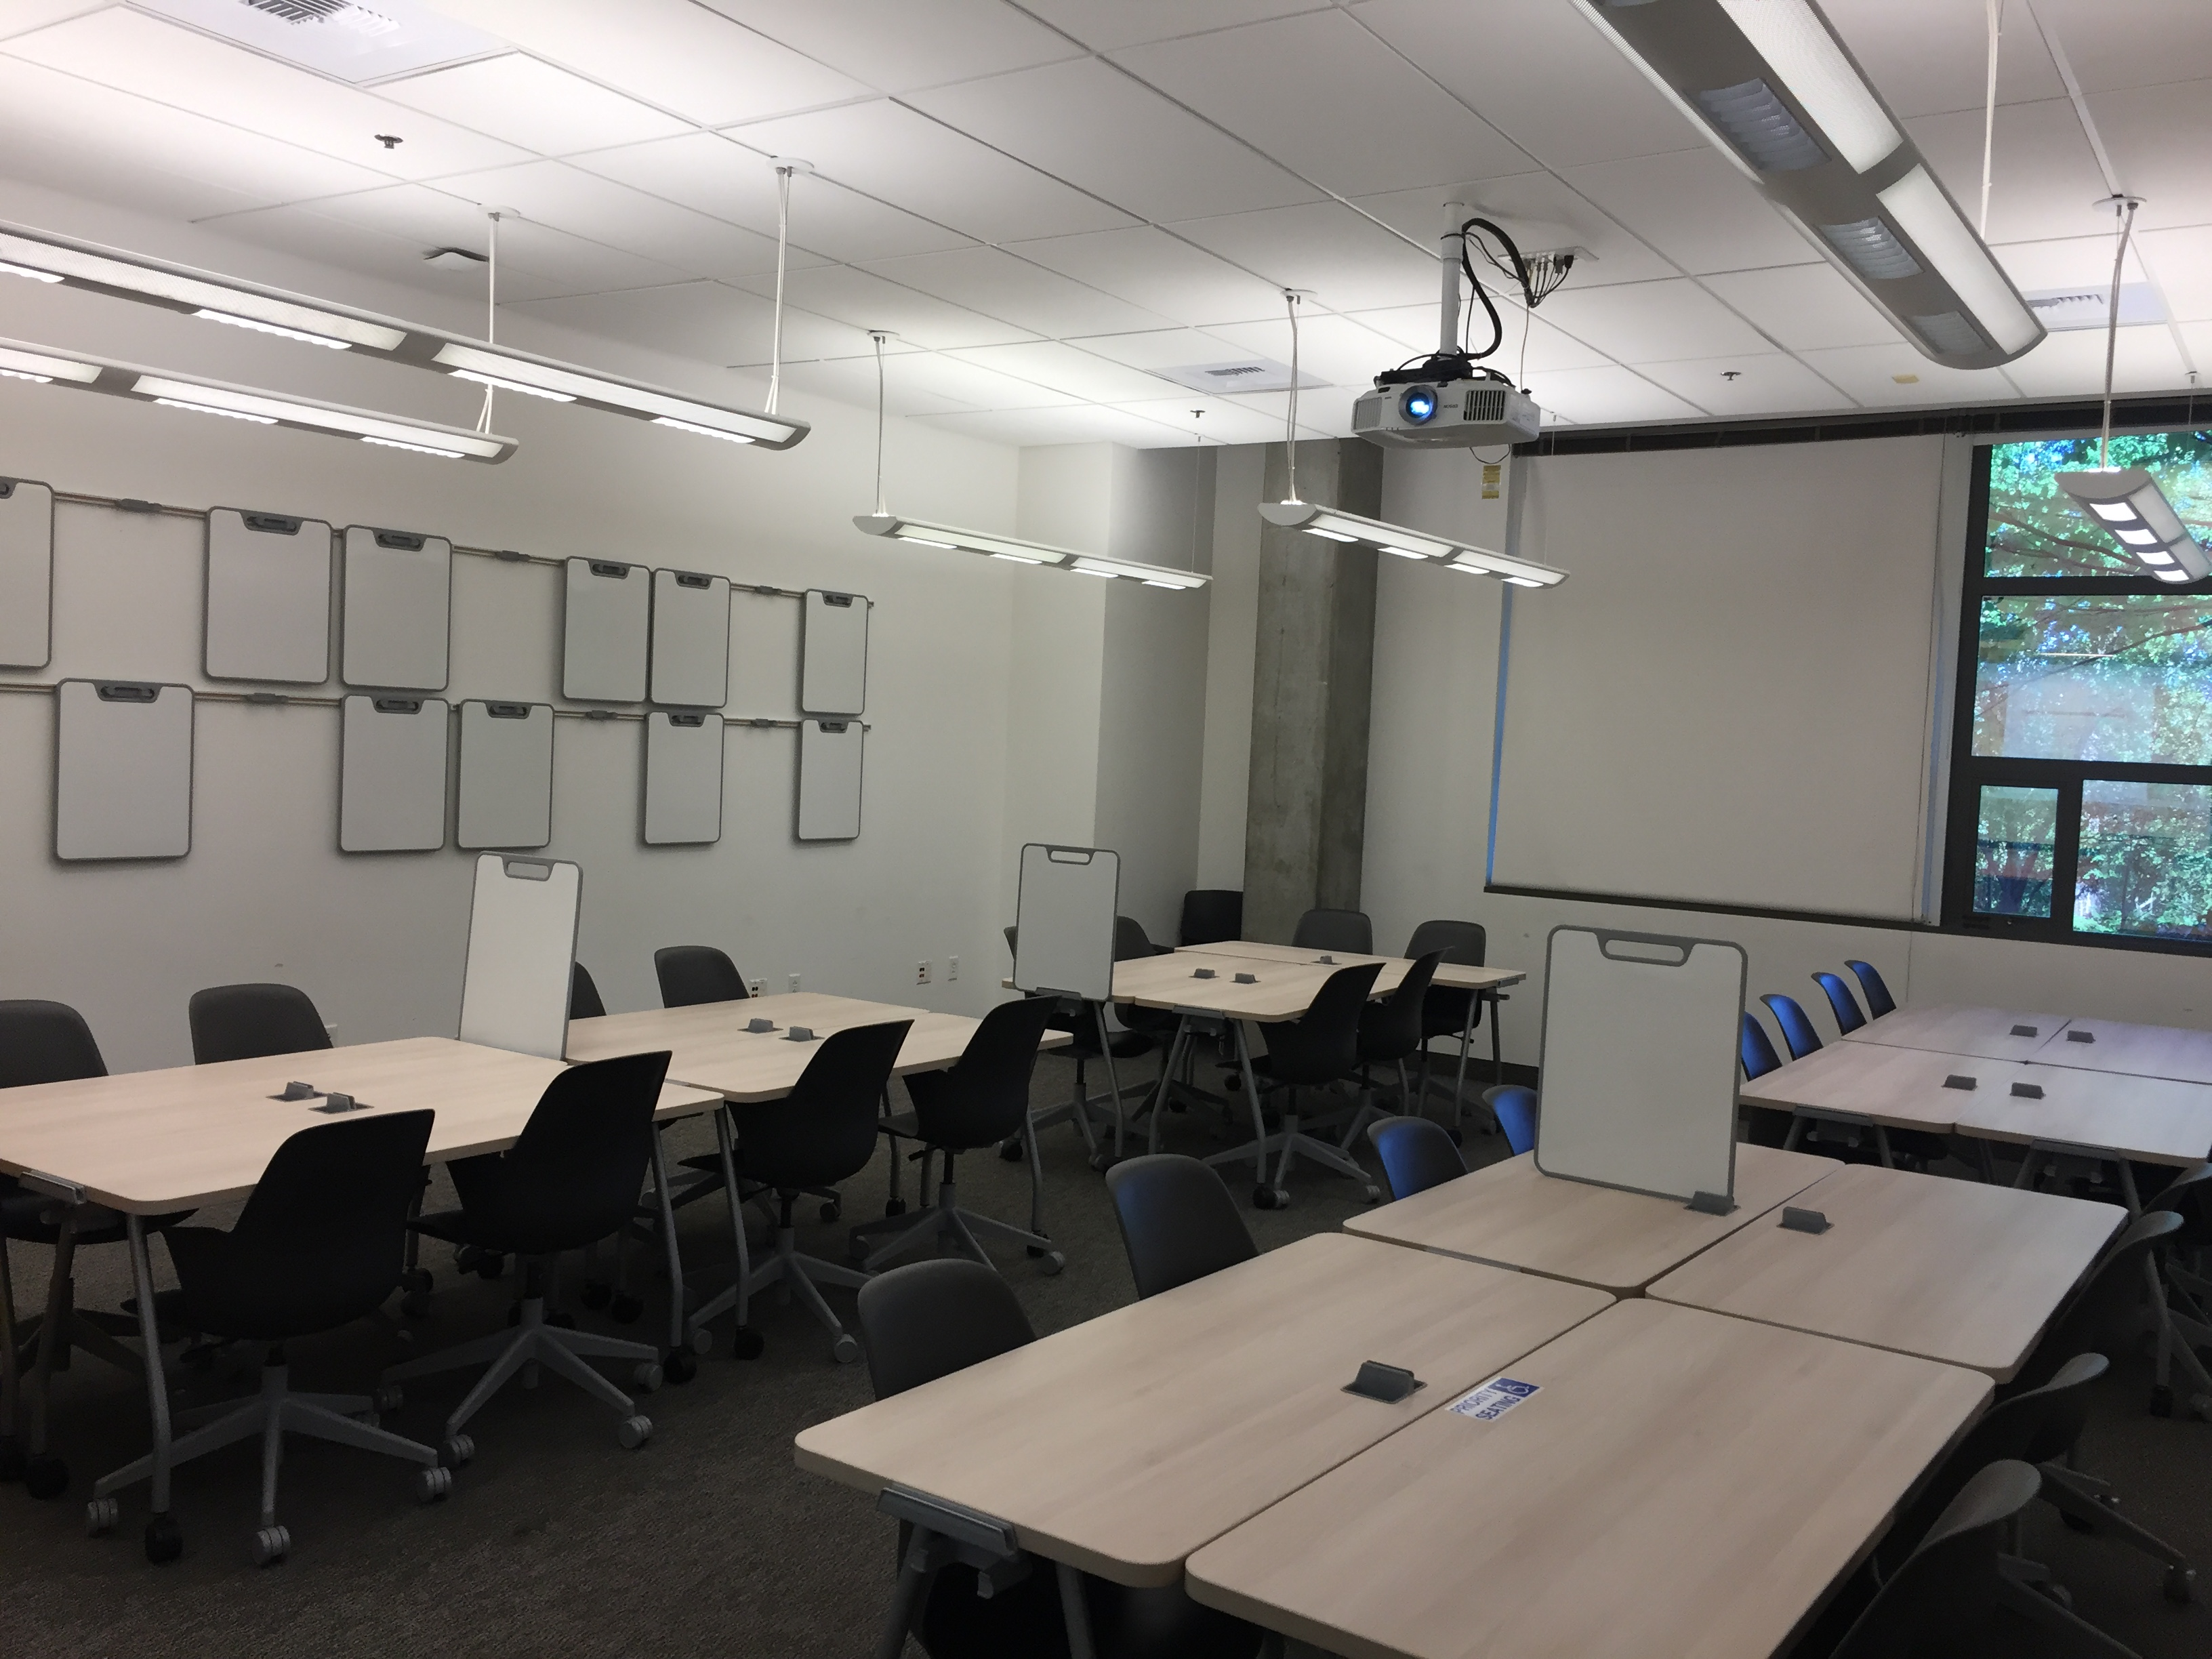 UW Bothell Founders Hall, Room 060, default configuration